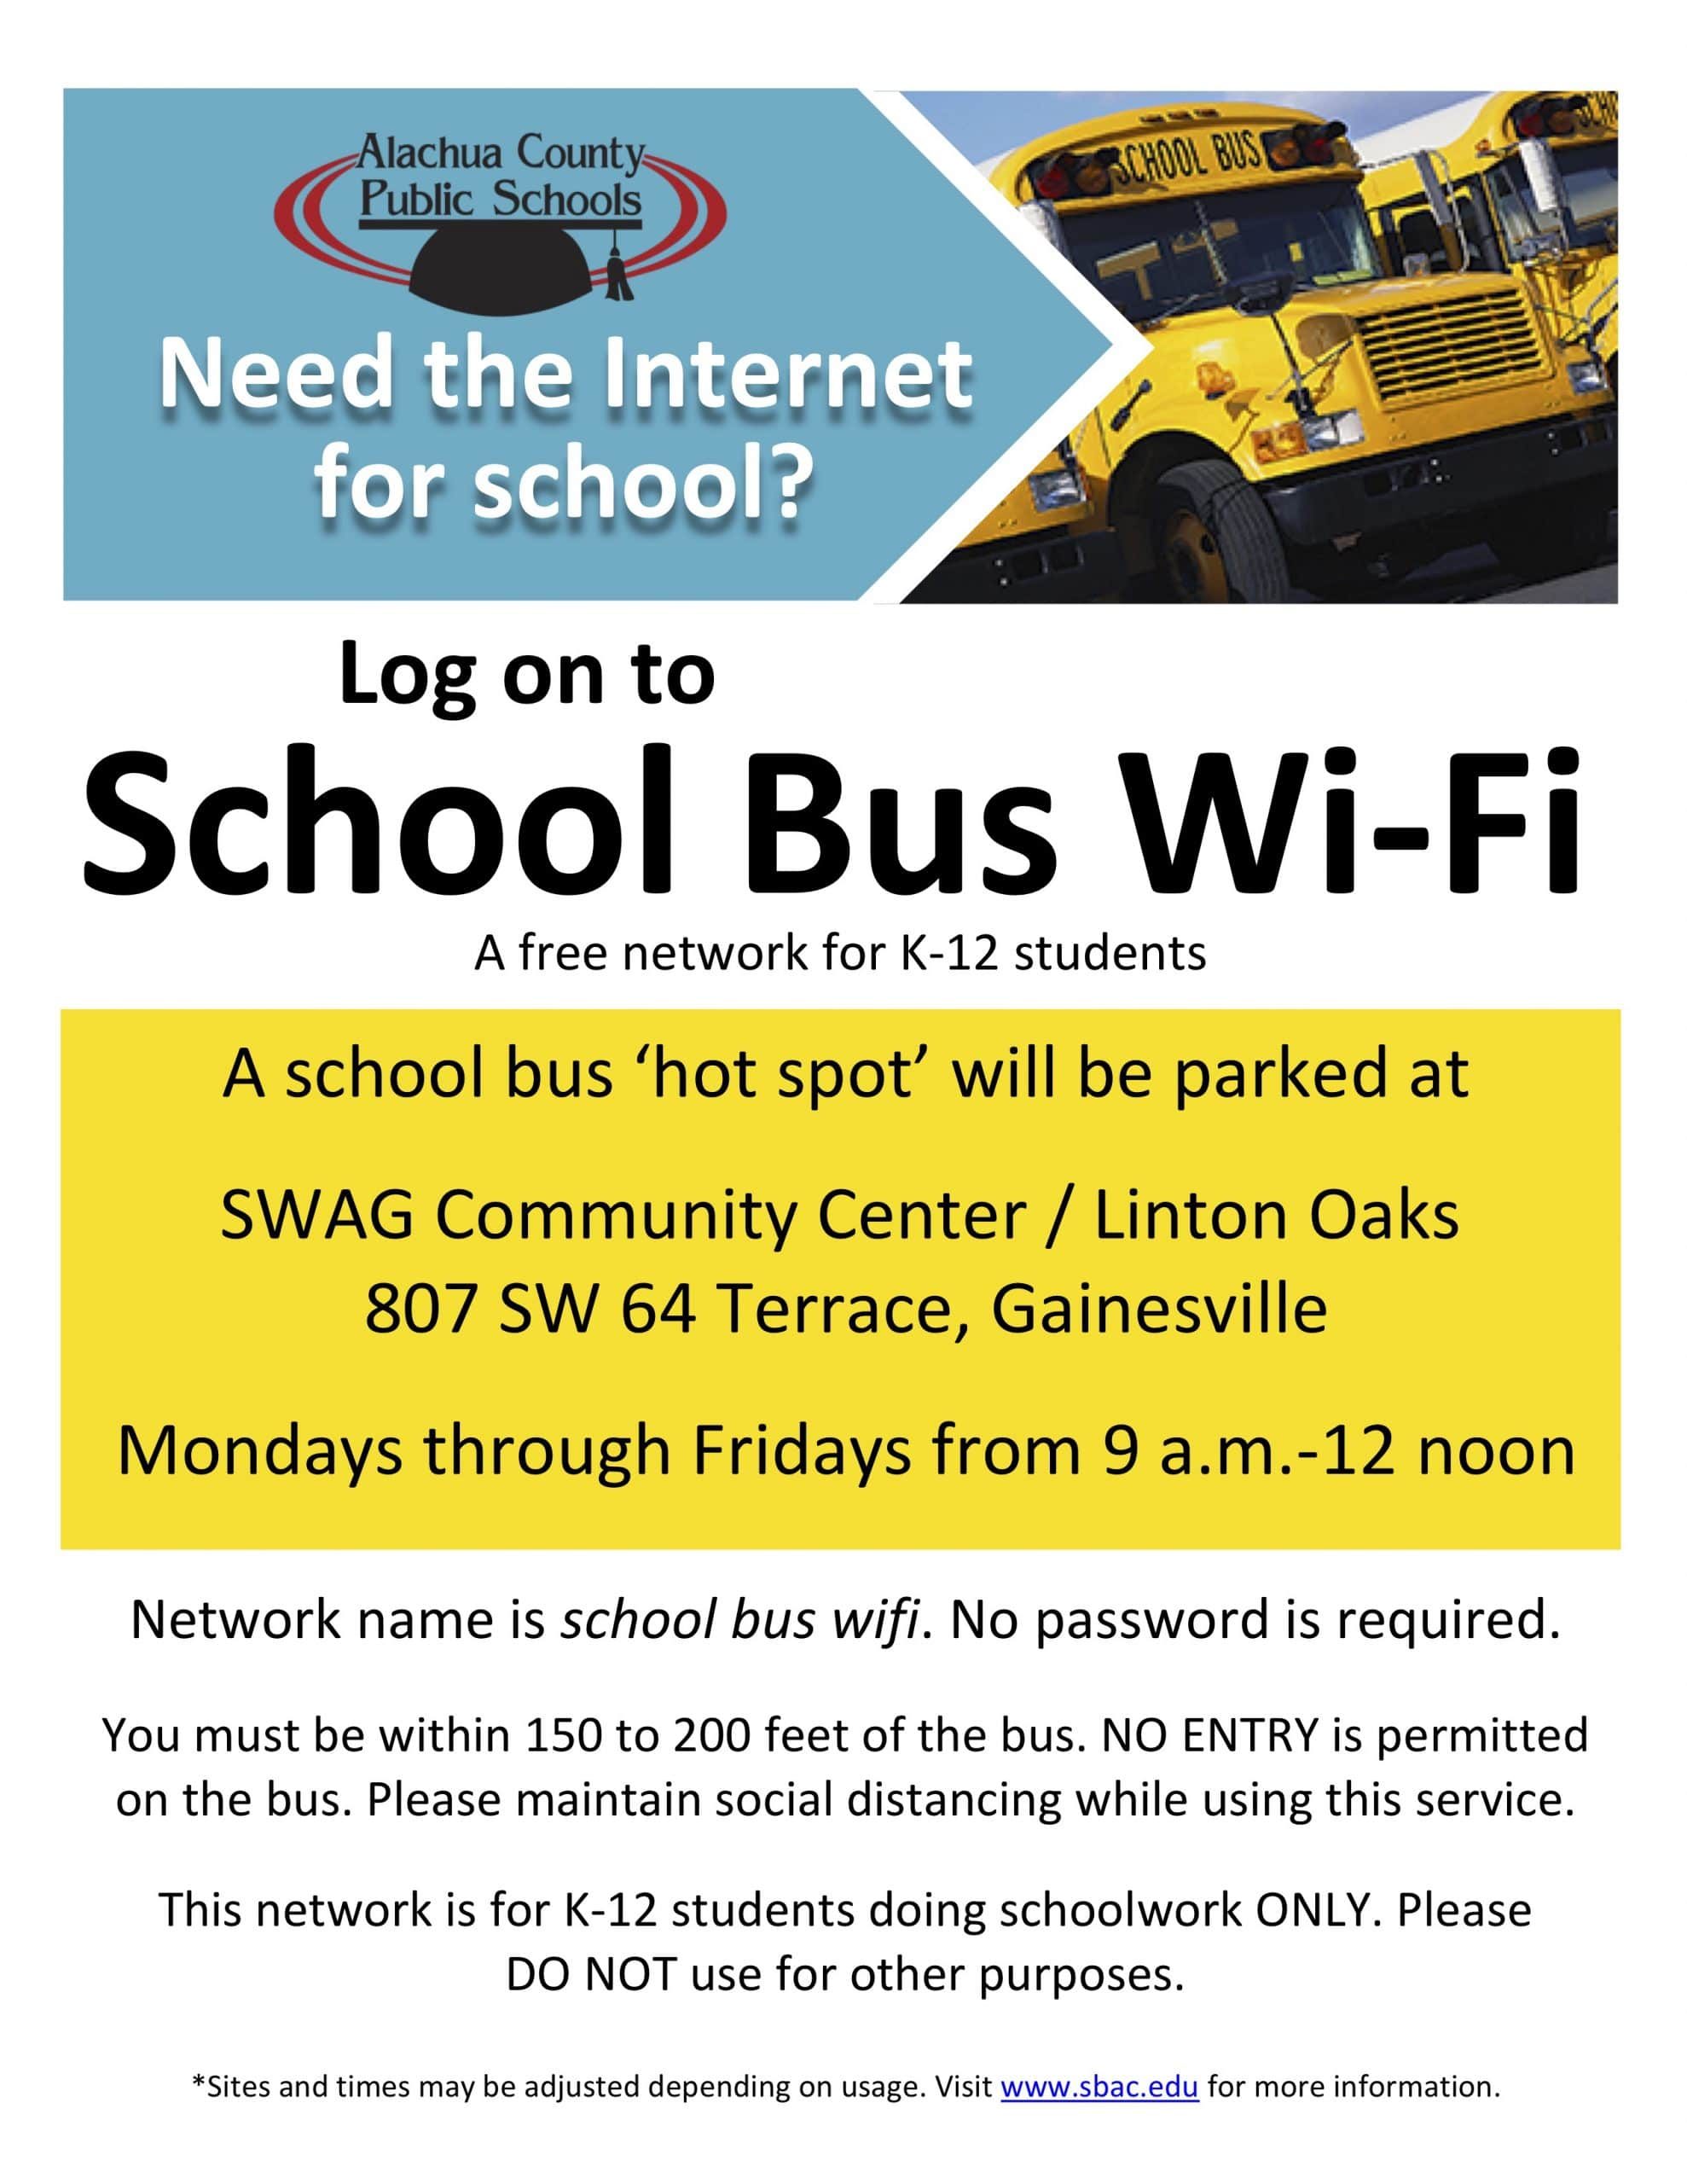 Free School Bus Wi-Fi for K-12 Students!